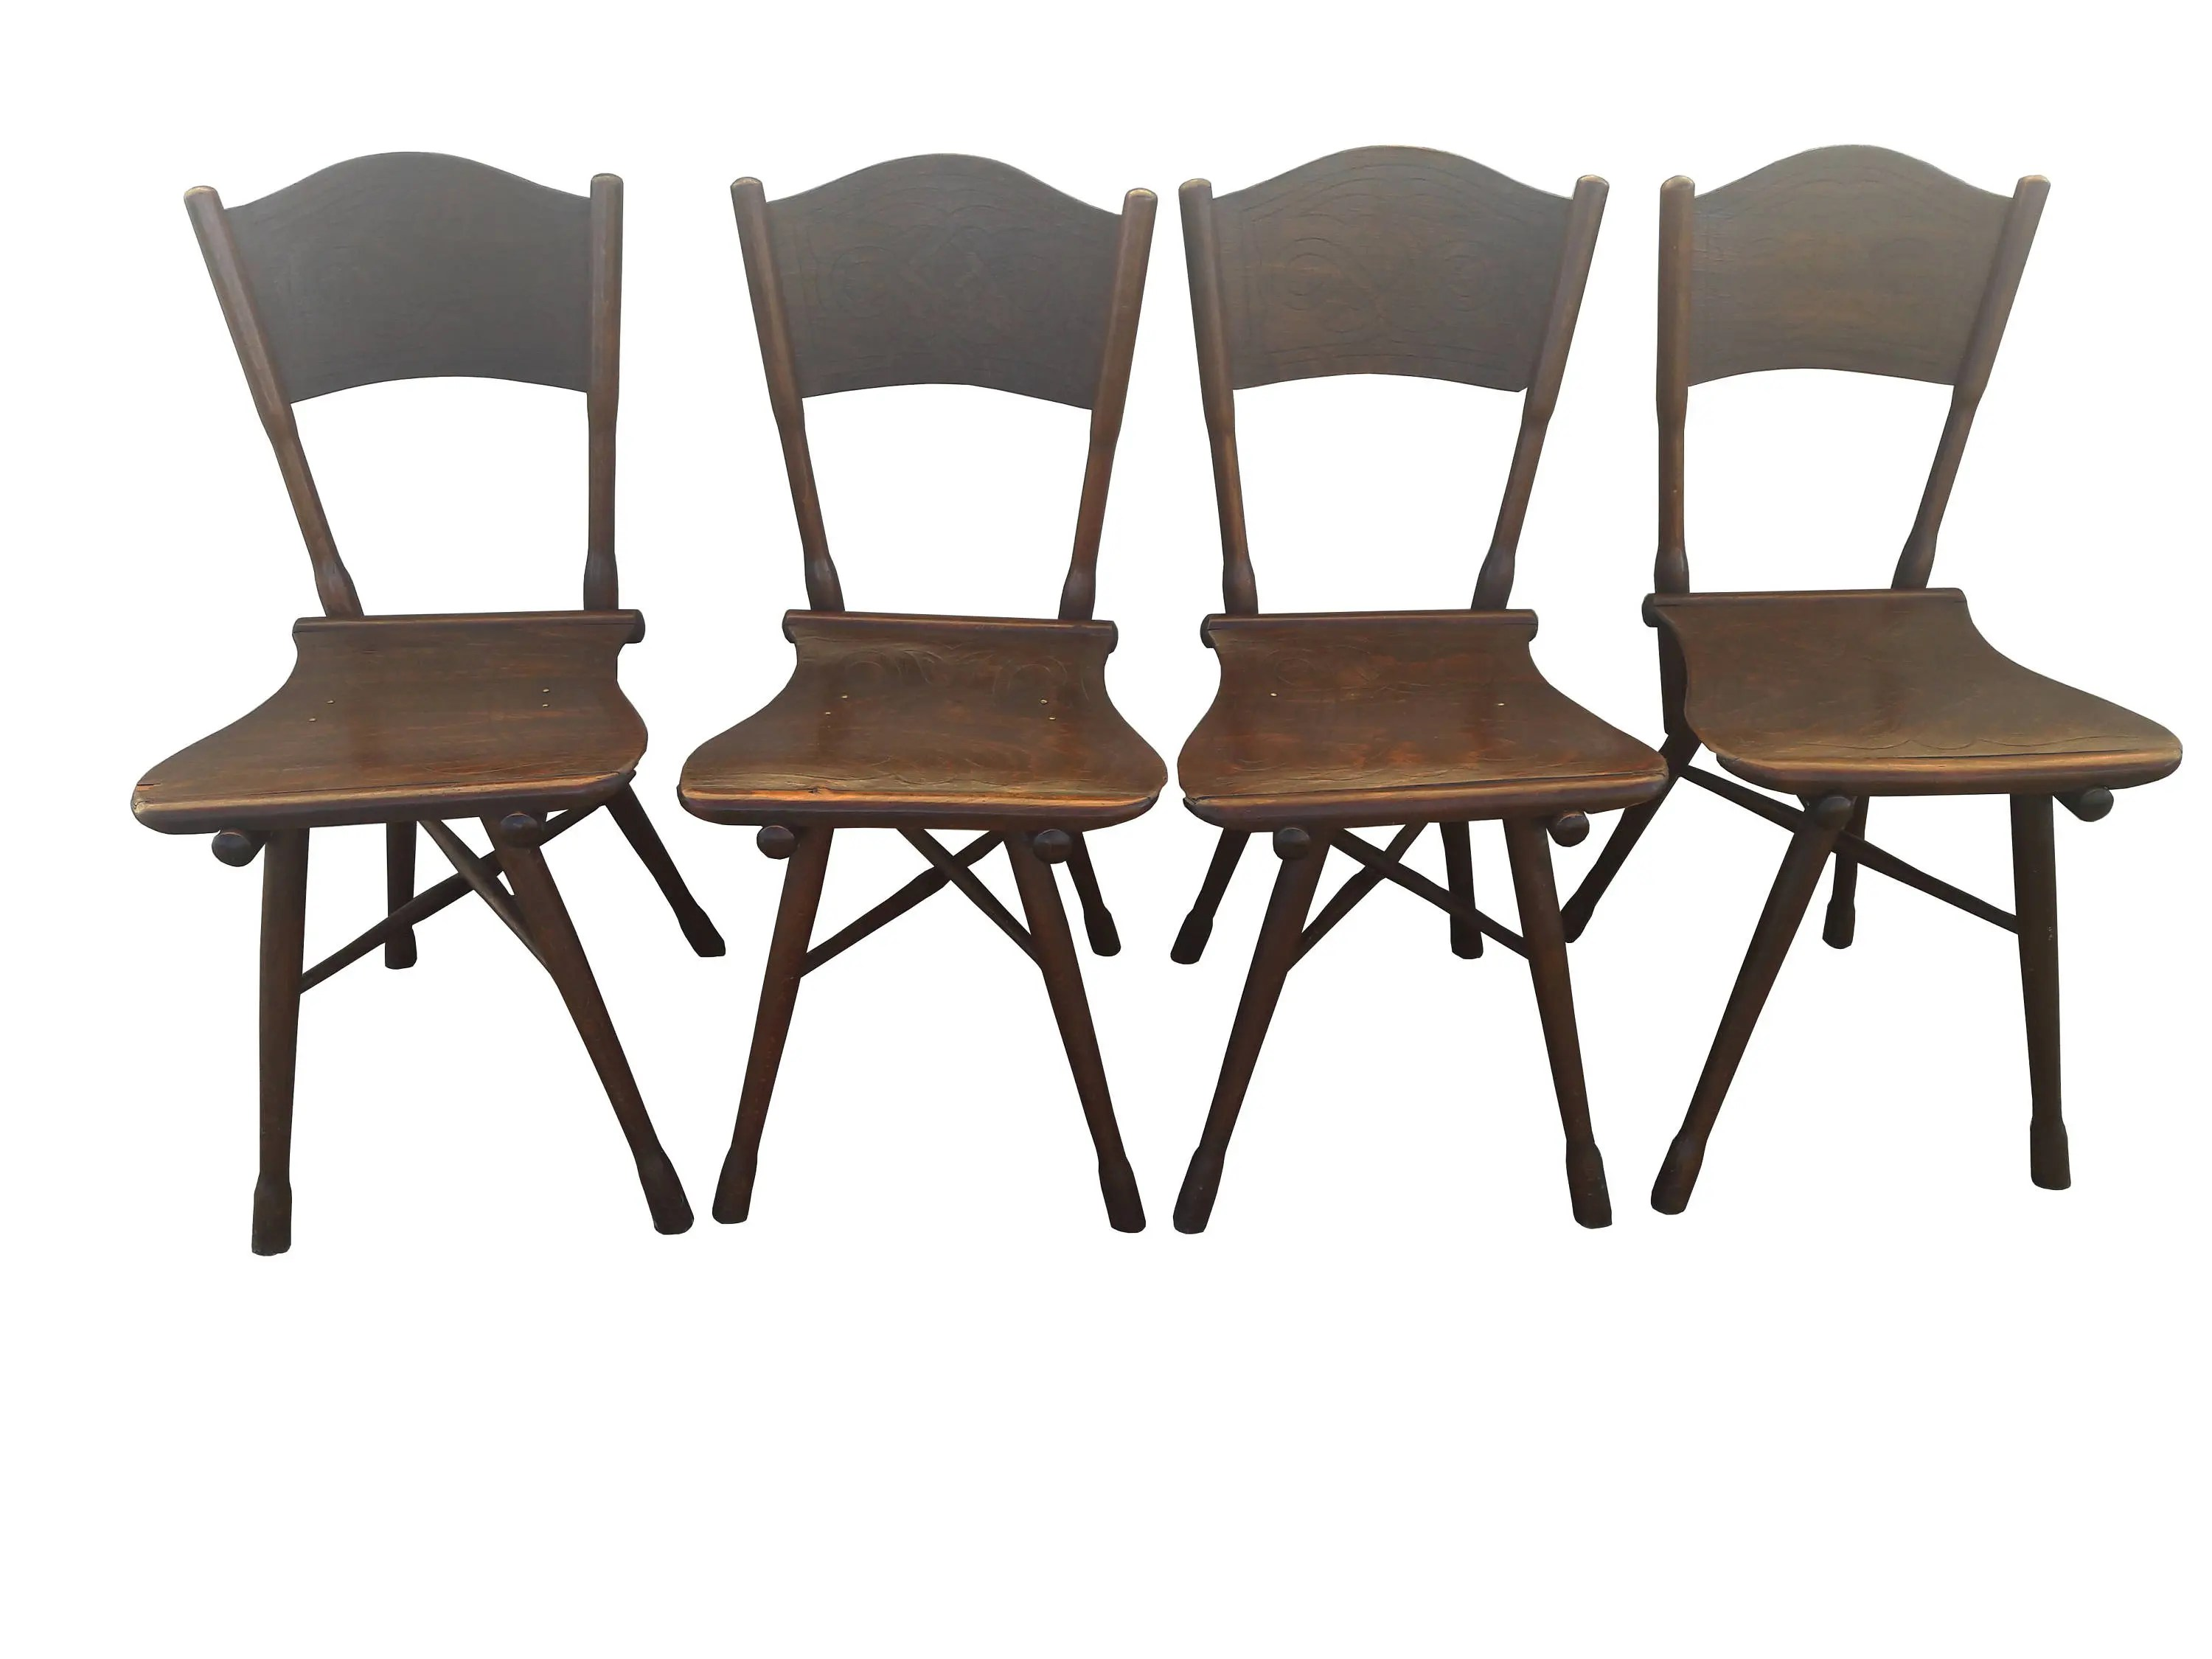 Sessel Made In Germany Antique Thonet Garden Chairs Set Of 4 Antique Carved German Bistro Garten Chairs